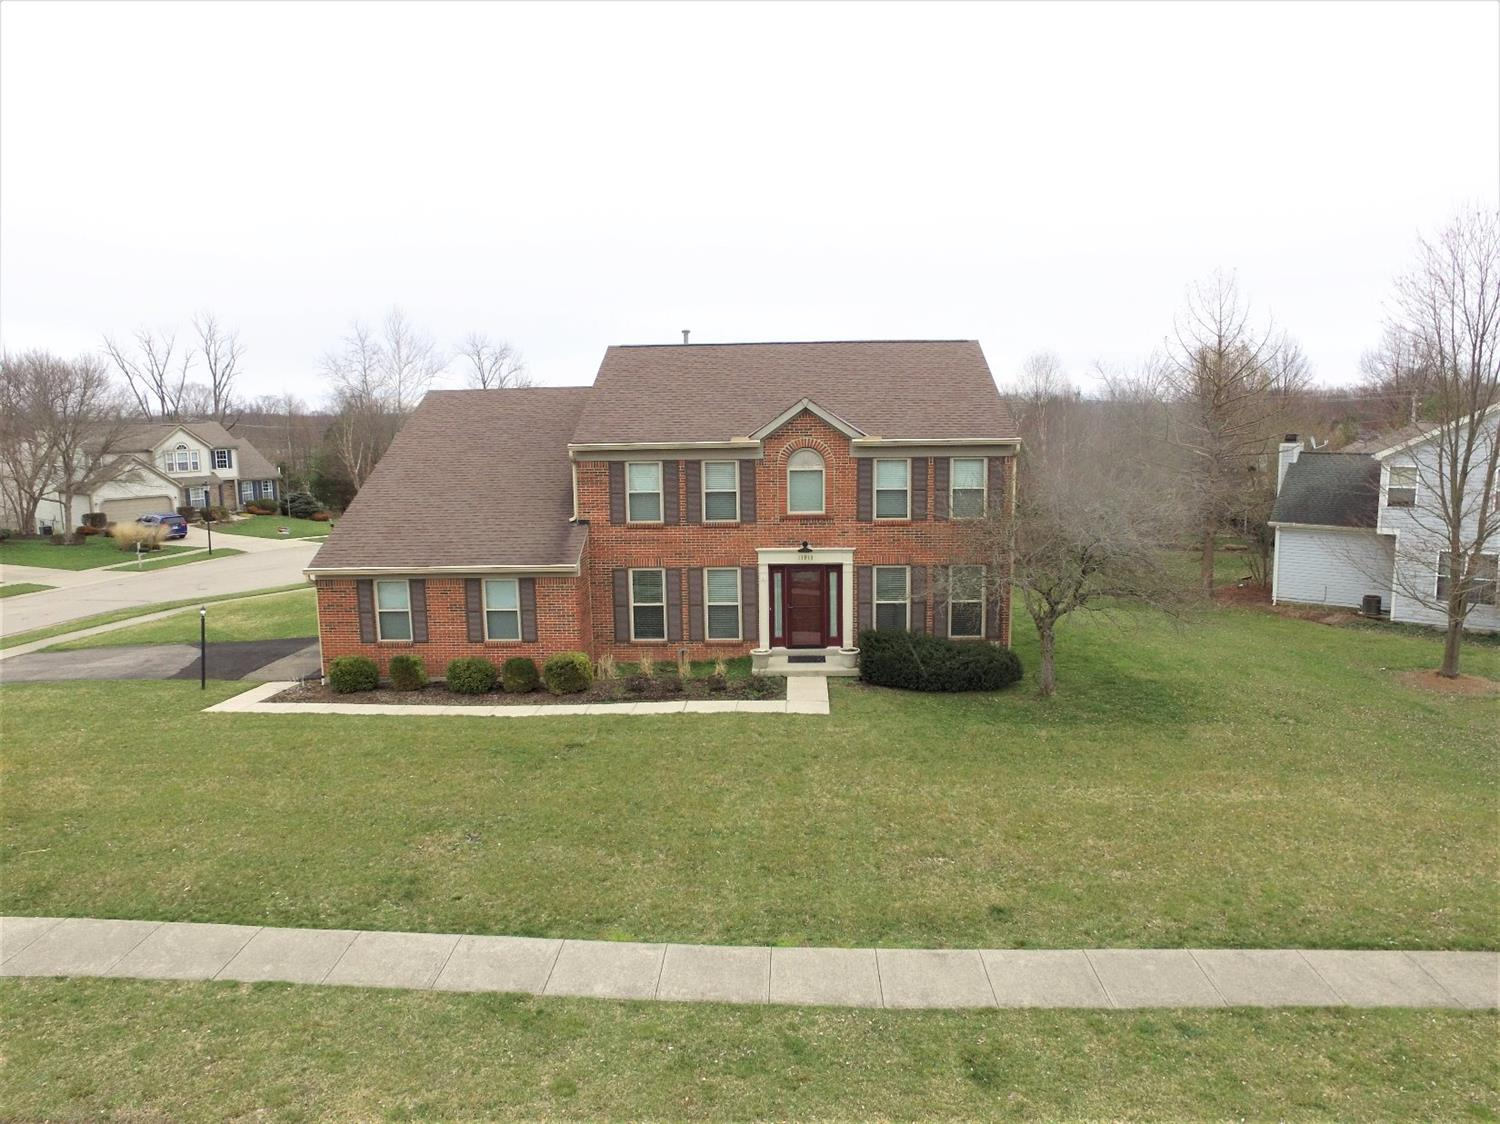 Property for sale at 11913 Foxgate Way, Symmes Twp,  Ohio 45140